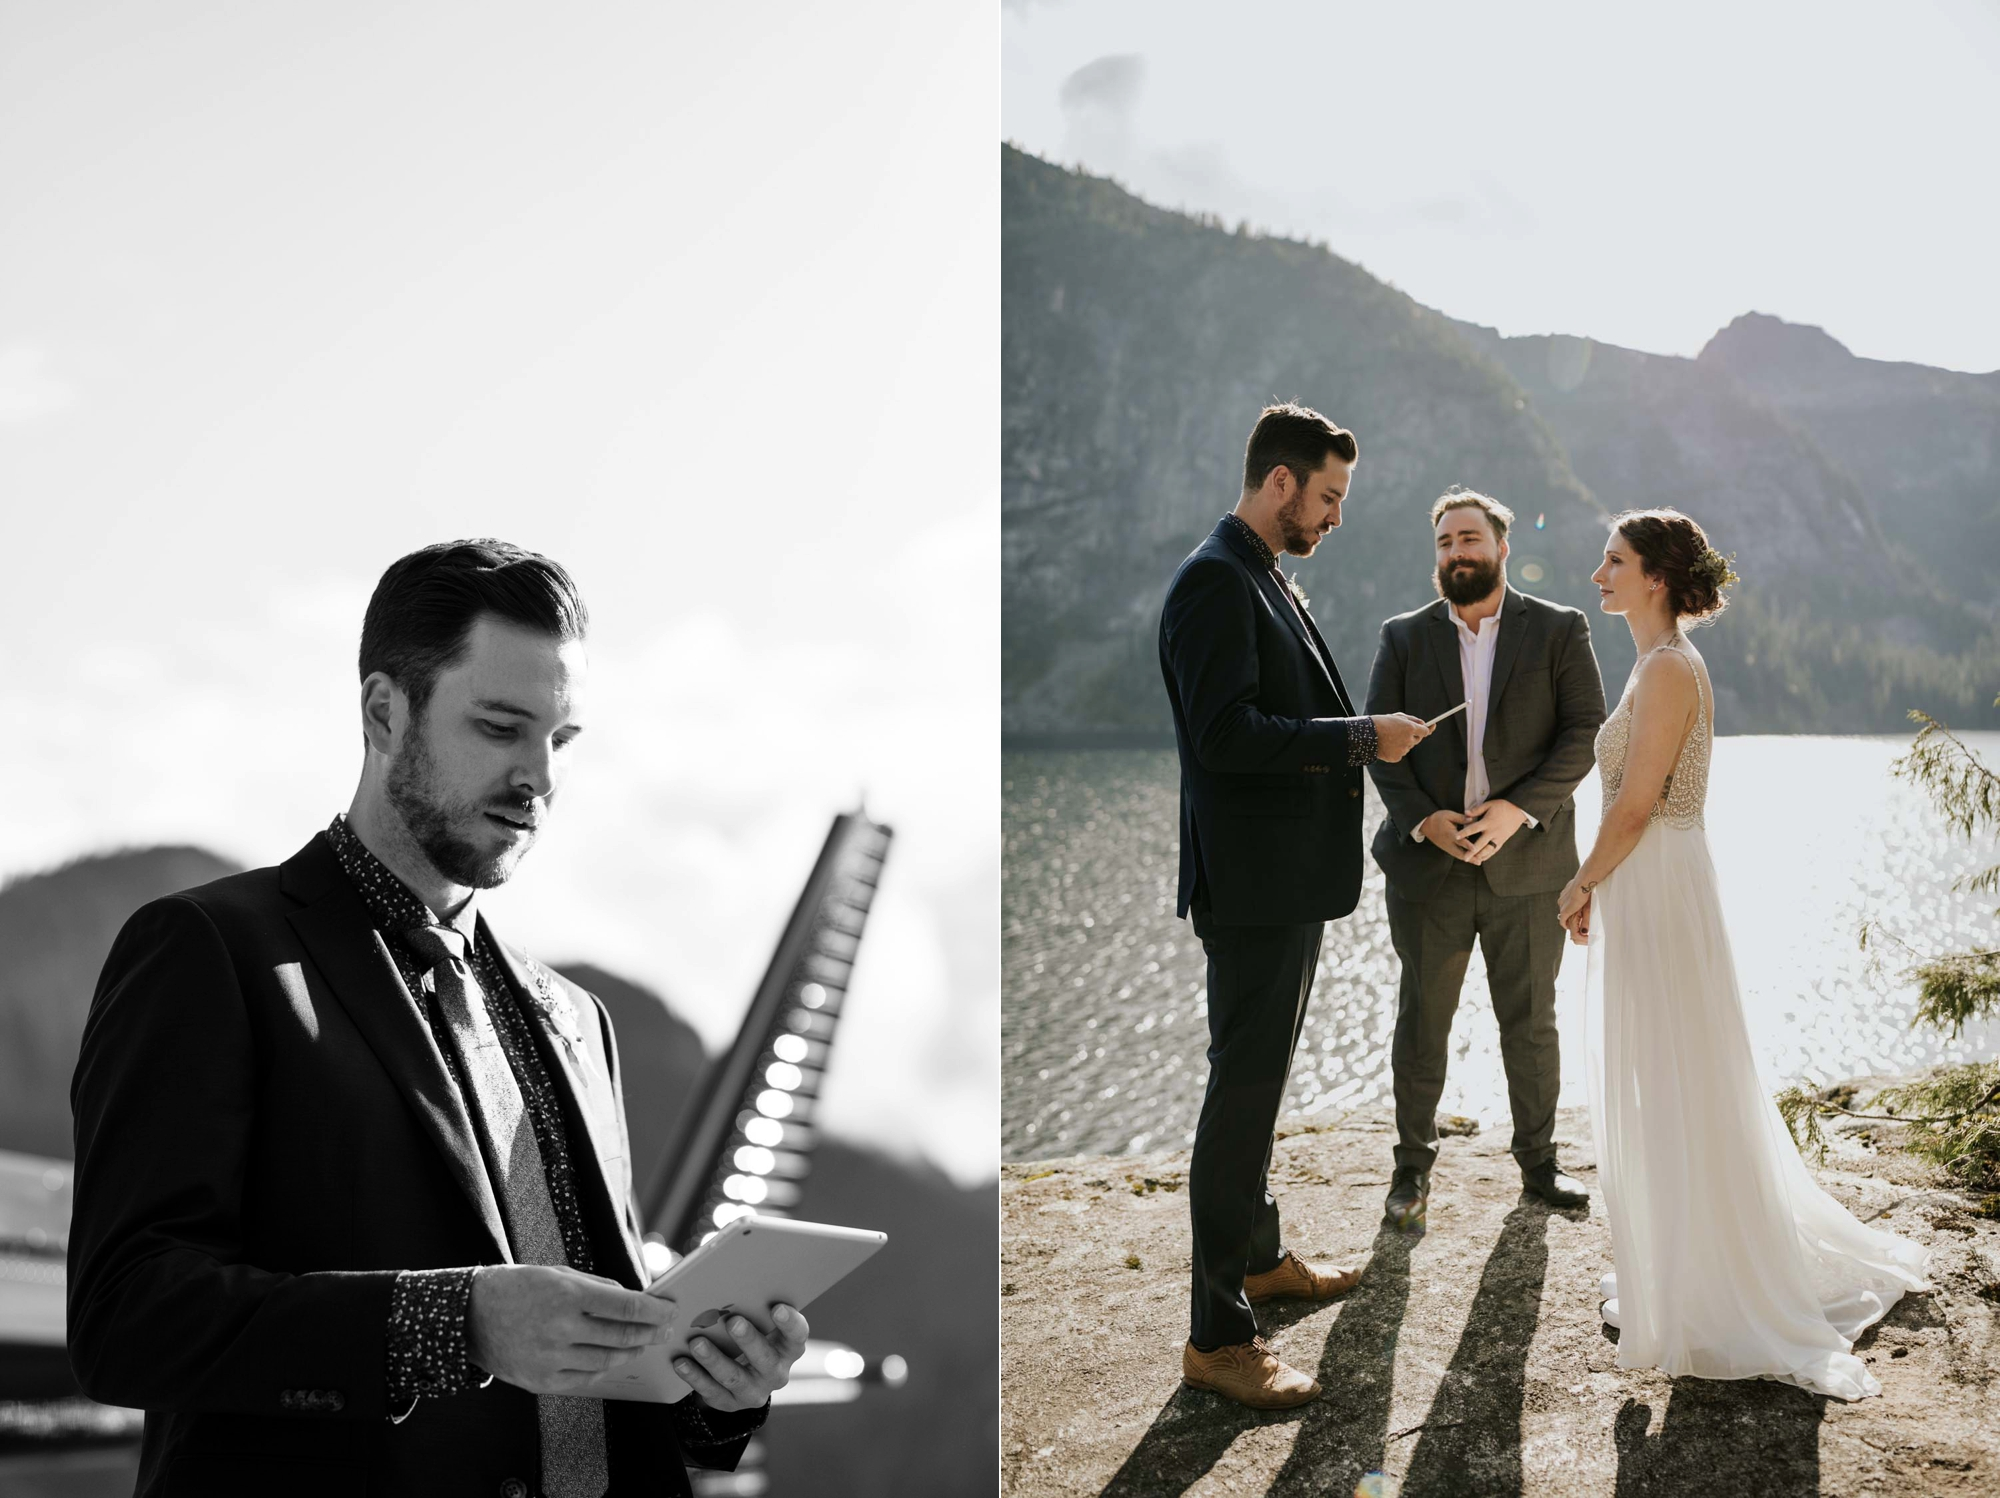 Sky helicopter elopement ceremony location in the secluded Vancouver BC mountains at Widgeon Peak and lake near Whistler